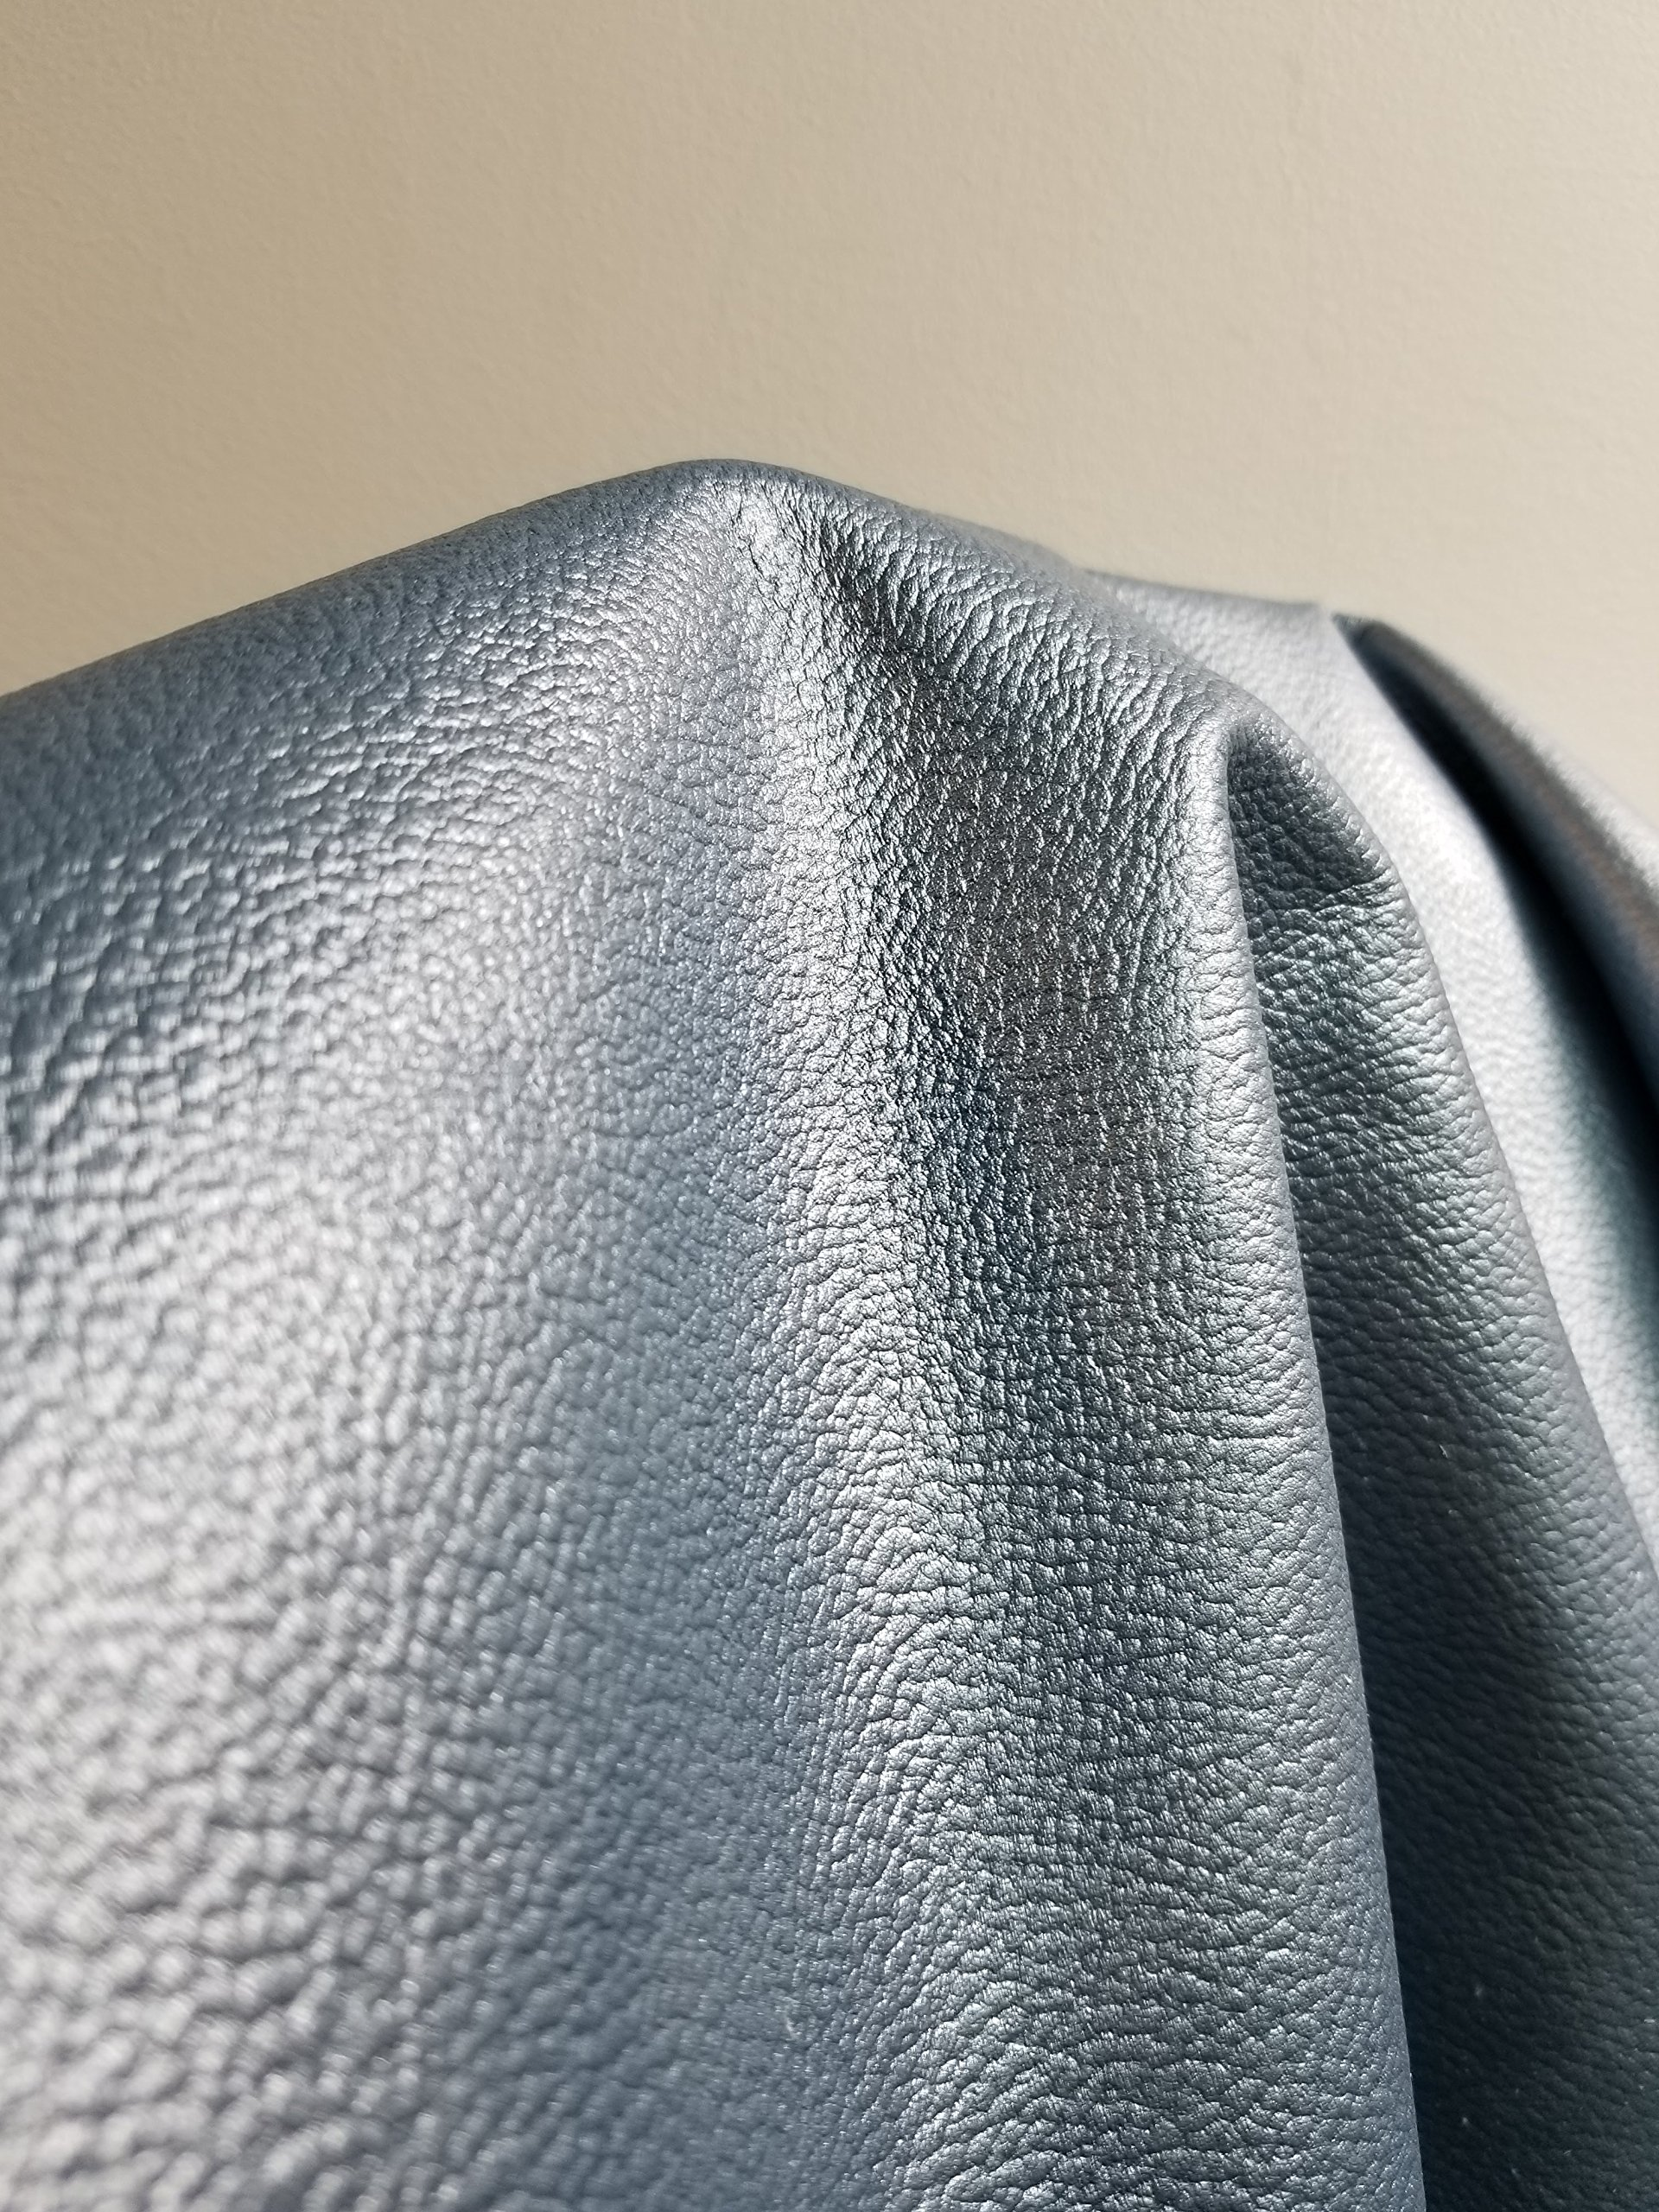 NAT Leathers Blue Silver Pearlized Metallic (Bluelight) Embossed Pebblegrain 3 Oz Semi Firm Upholstery Craft Cowhide Genuine Leather Hide Skin Square Feet (18-22 sq.ft.)